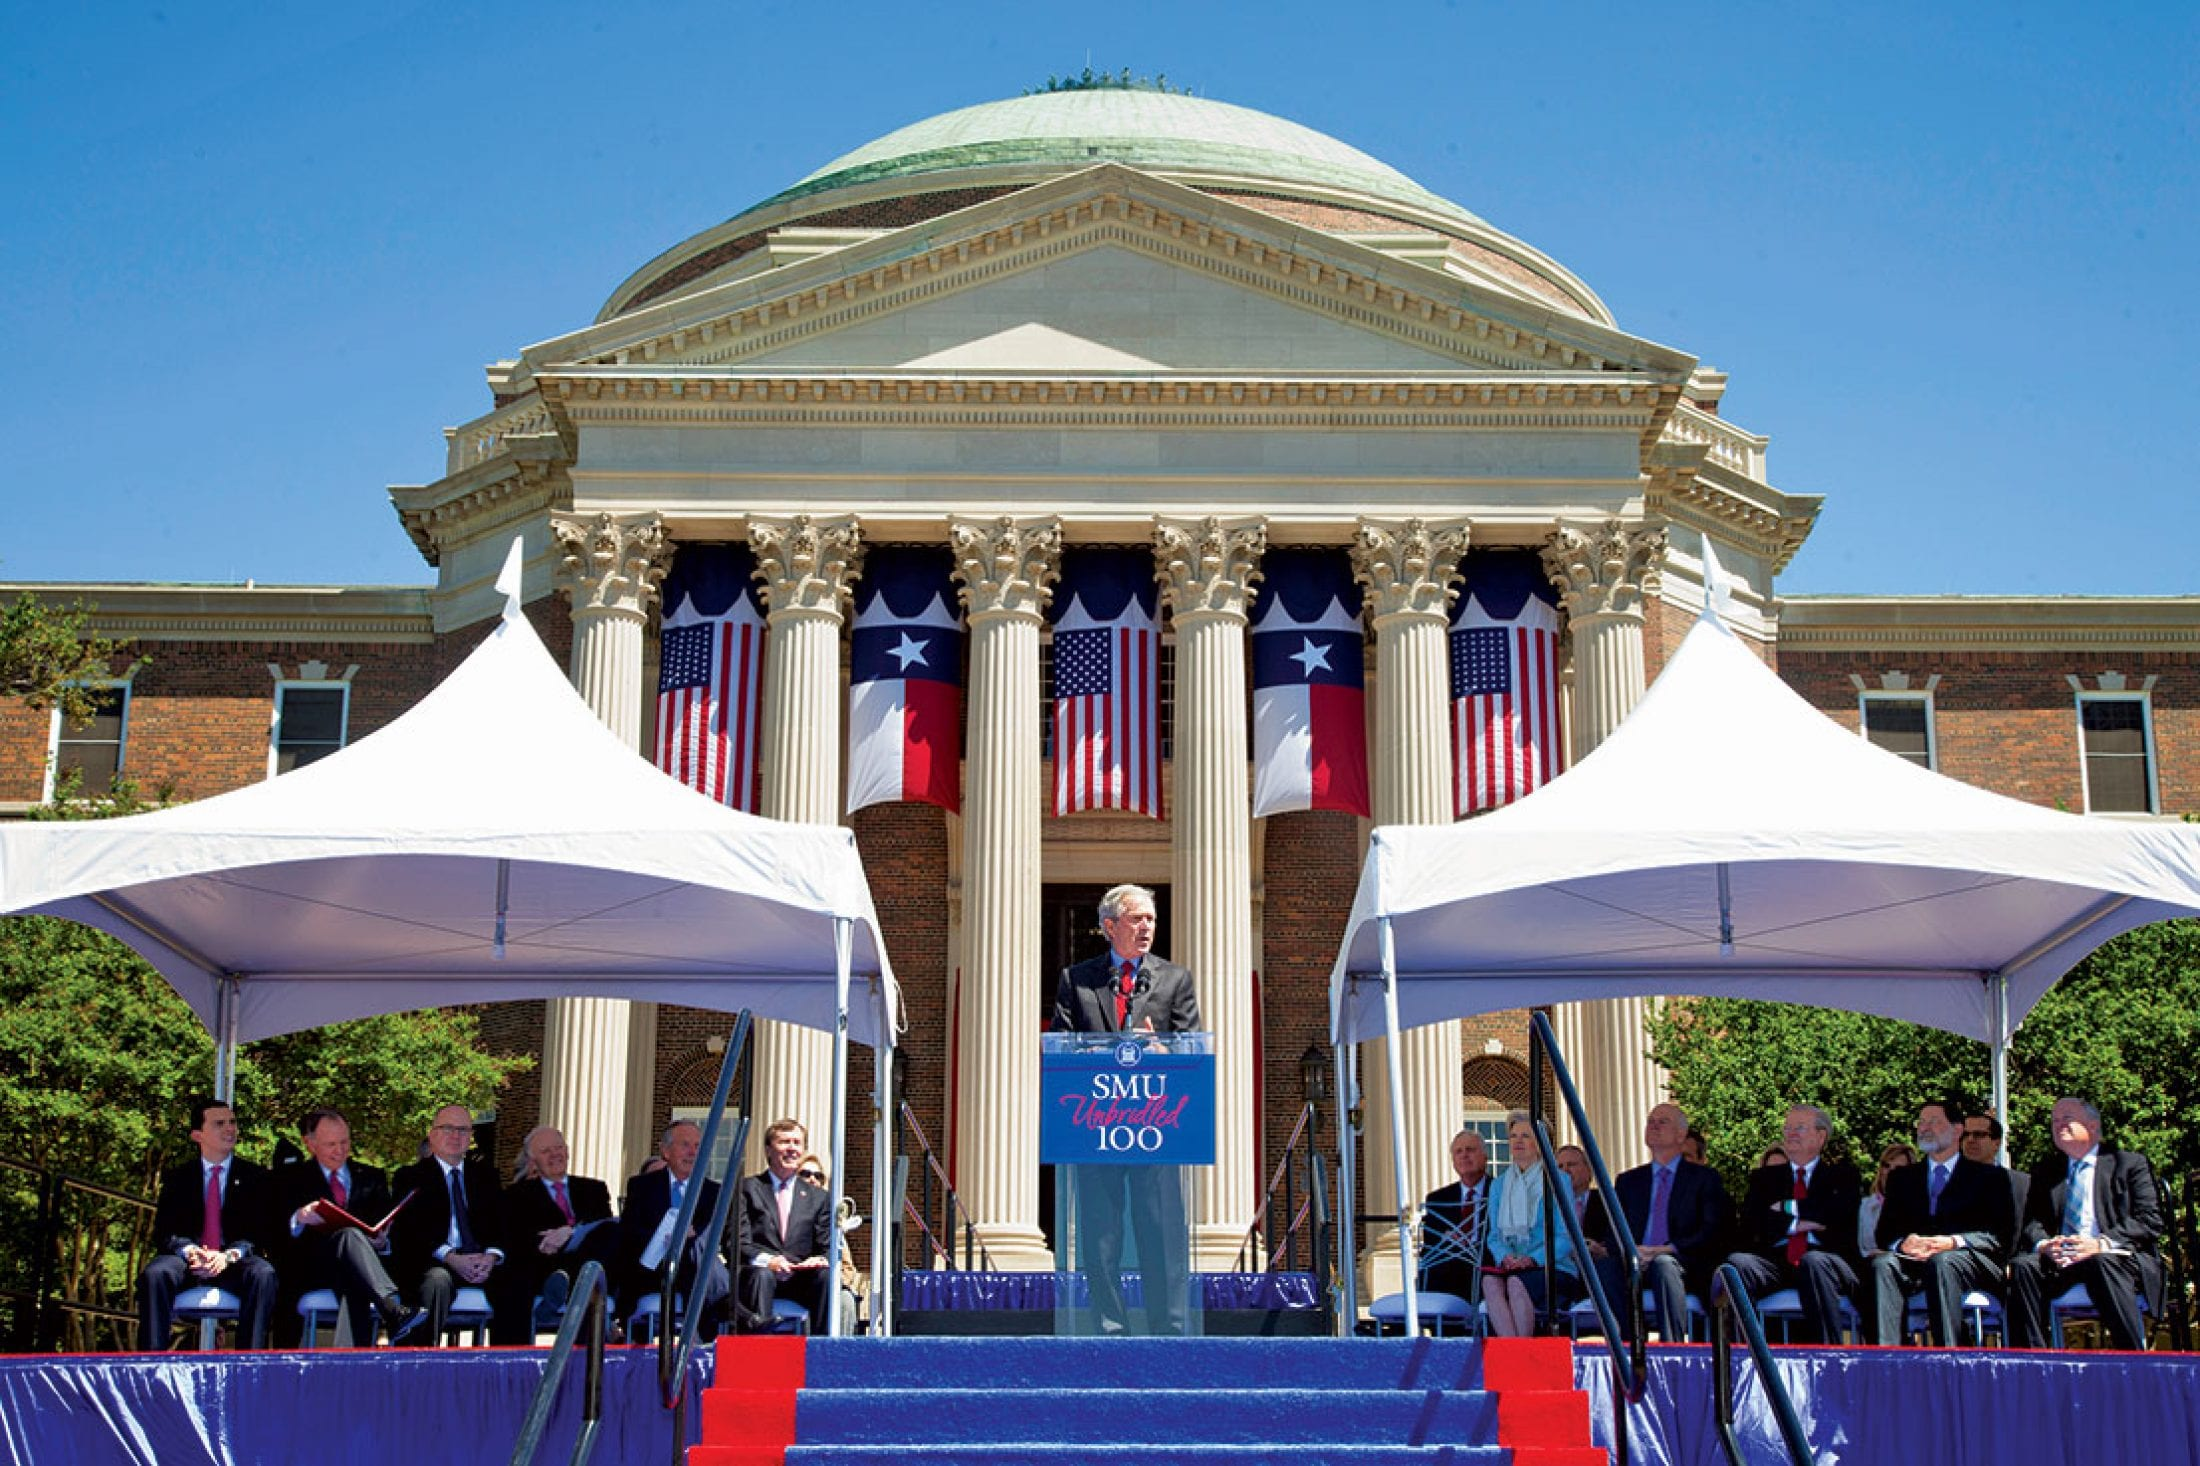 Former President George W. Bush at SMU Founders' Day Weekend 2013.